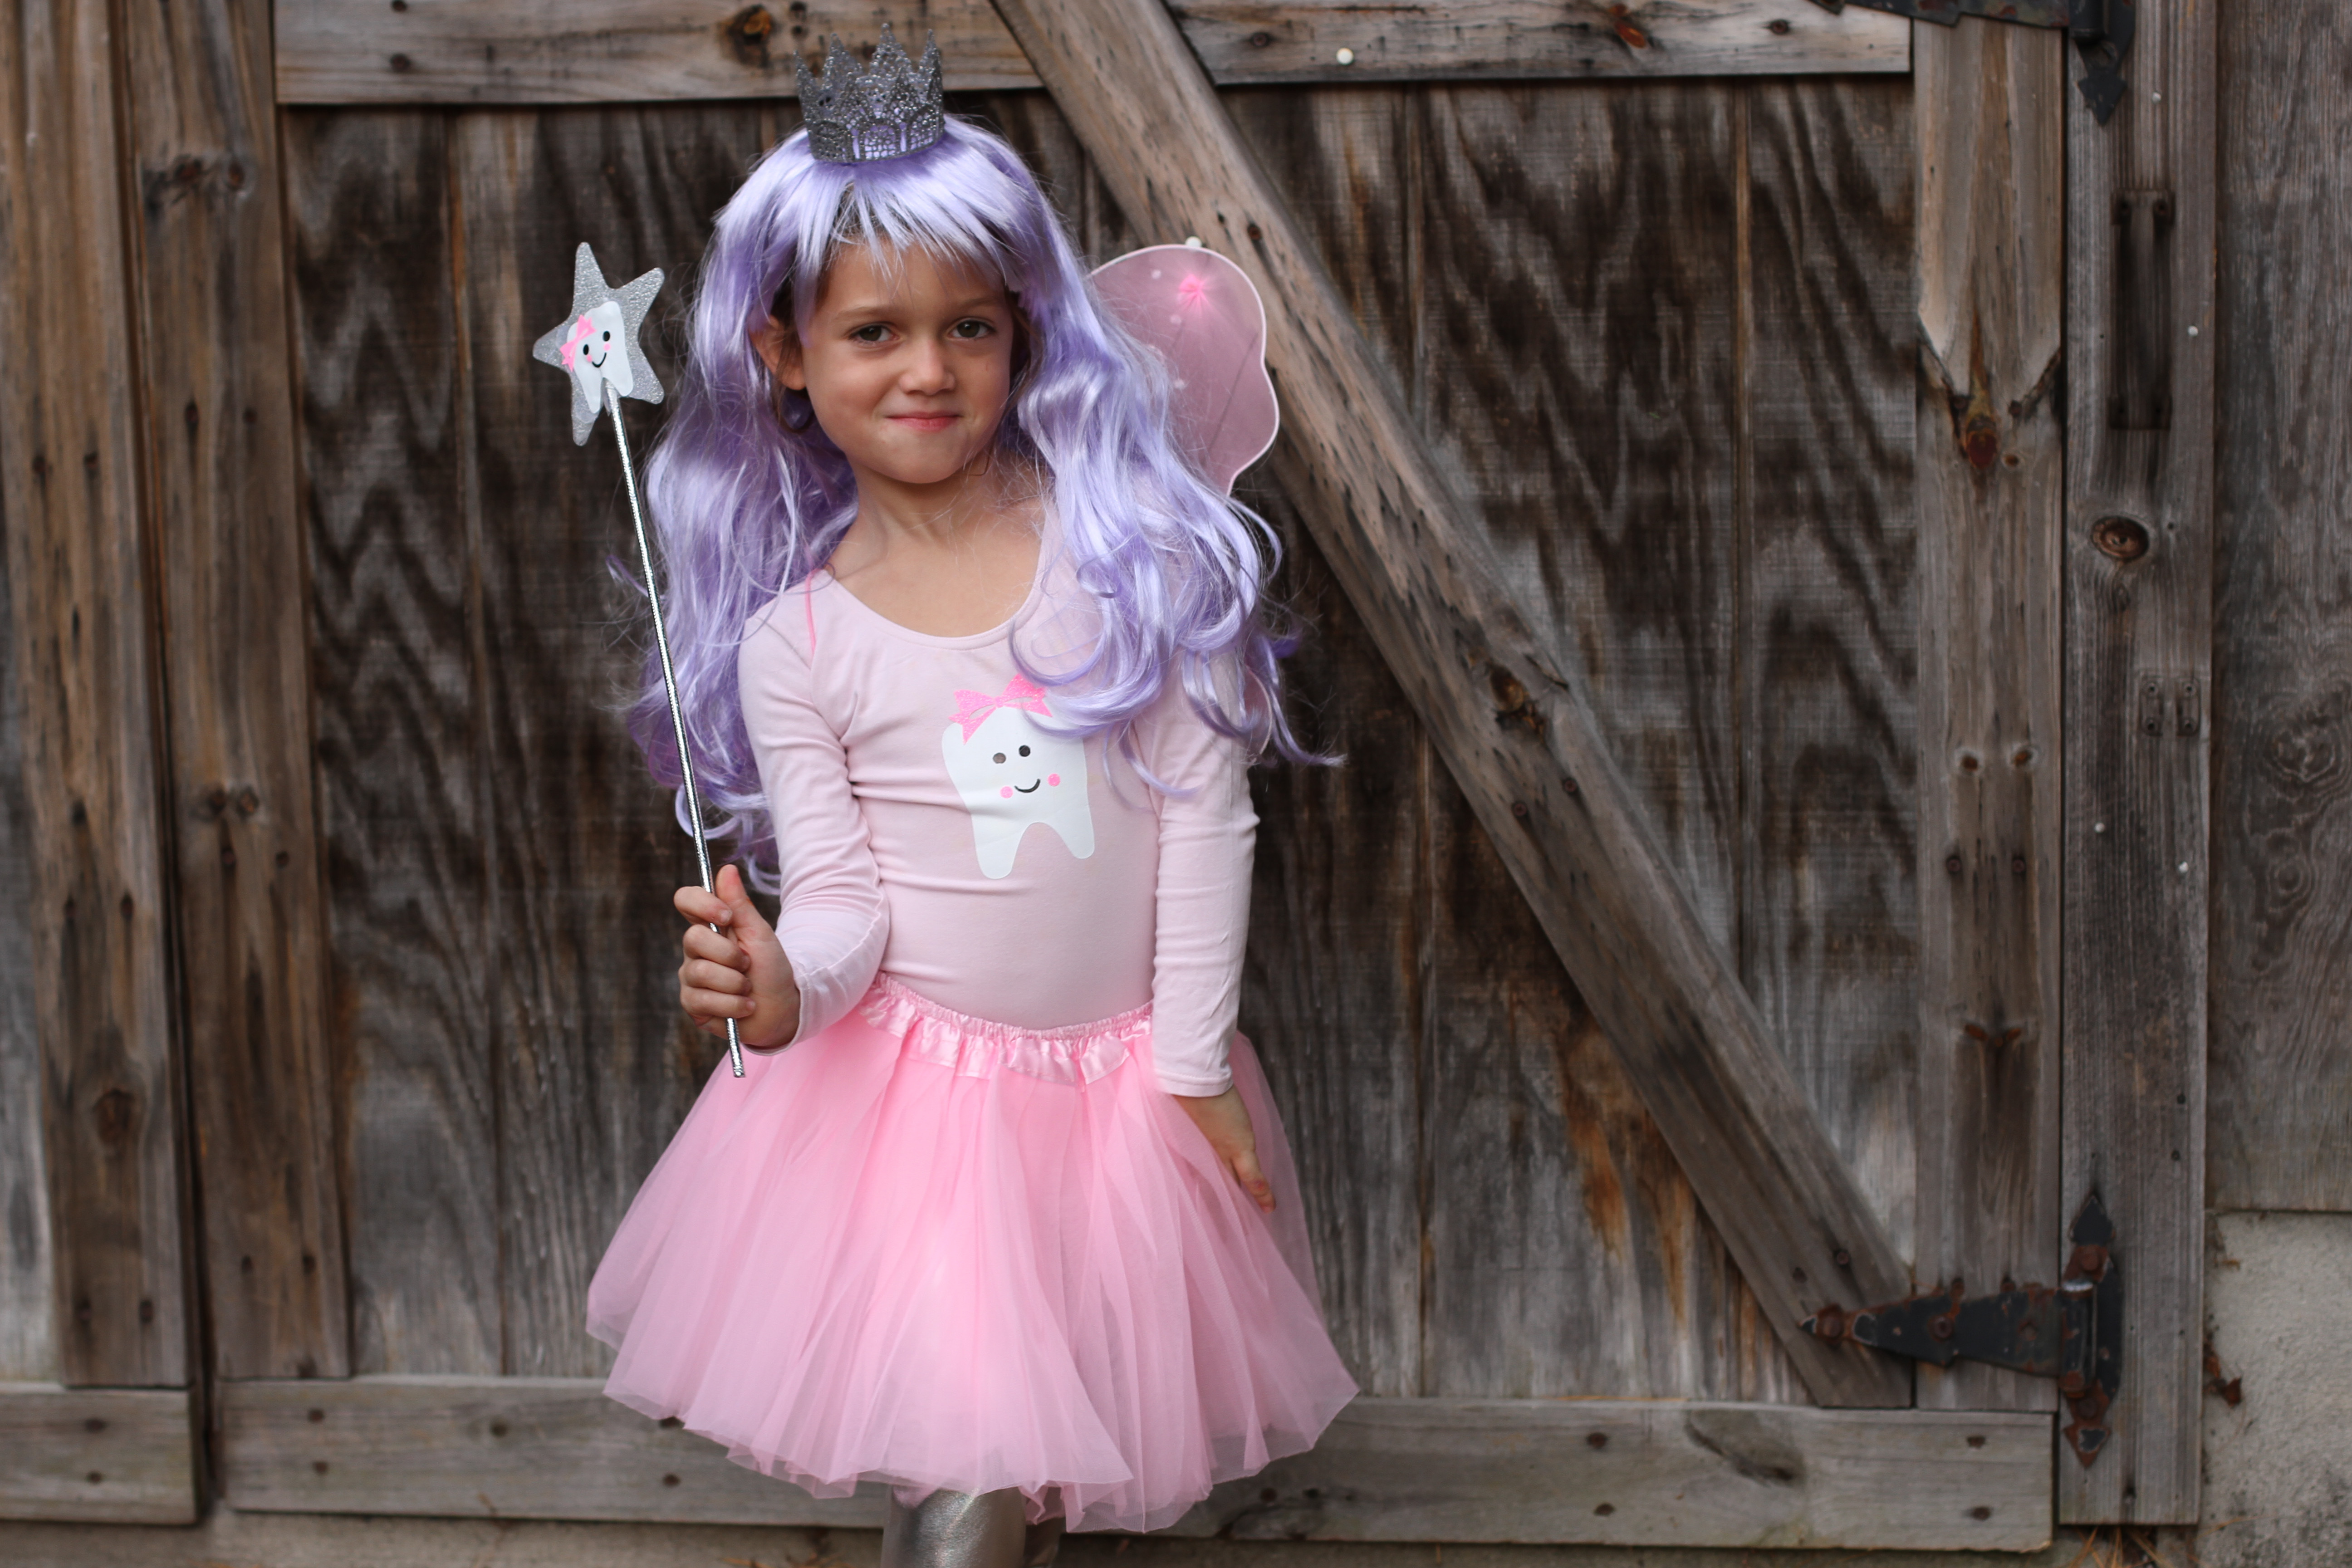 Best ideas about DIY Fairy Costume For Kids . Save or Pin Easy DIY Halloween Costume for Kids The Tooth Fairy Now.